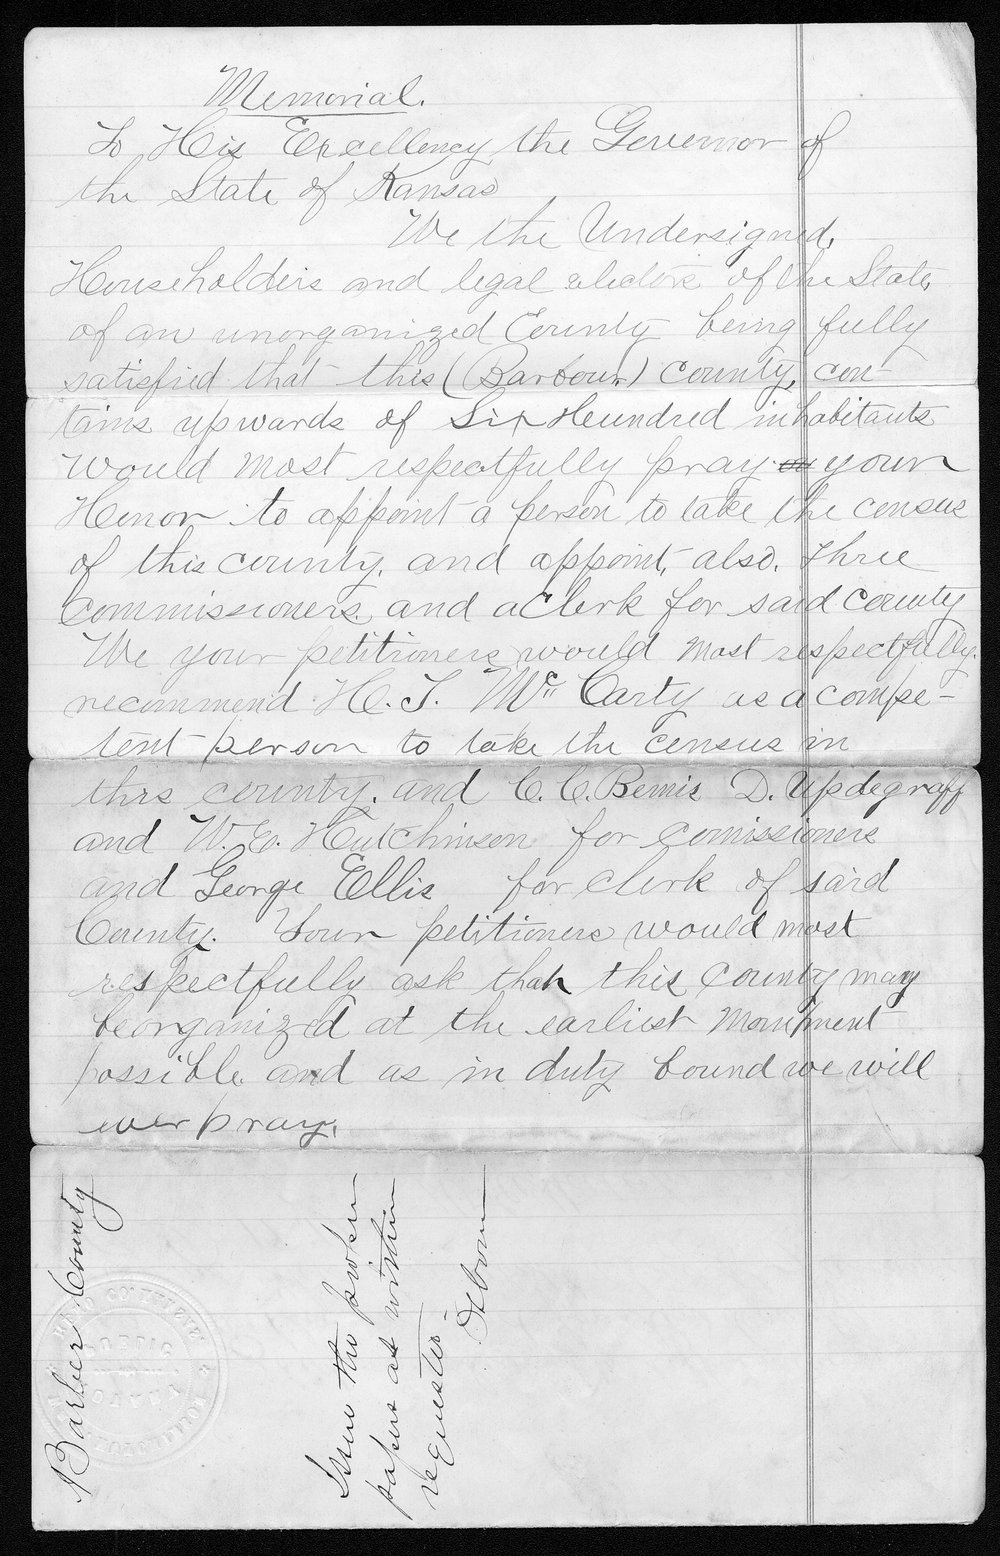 Barber county organization records - 1